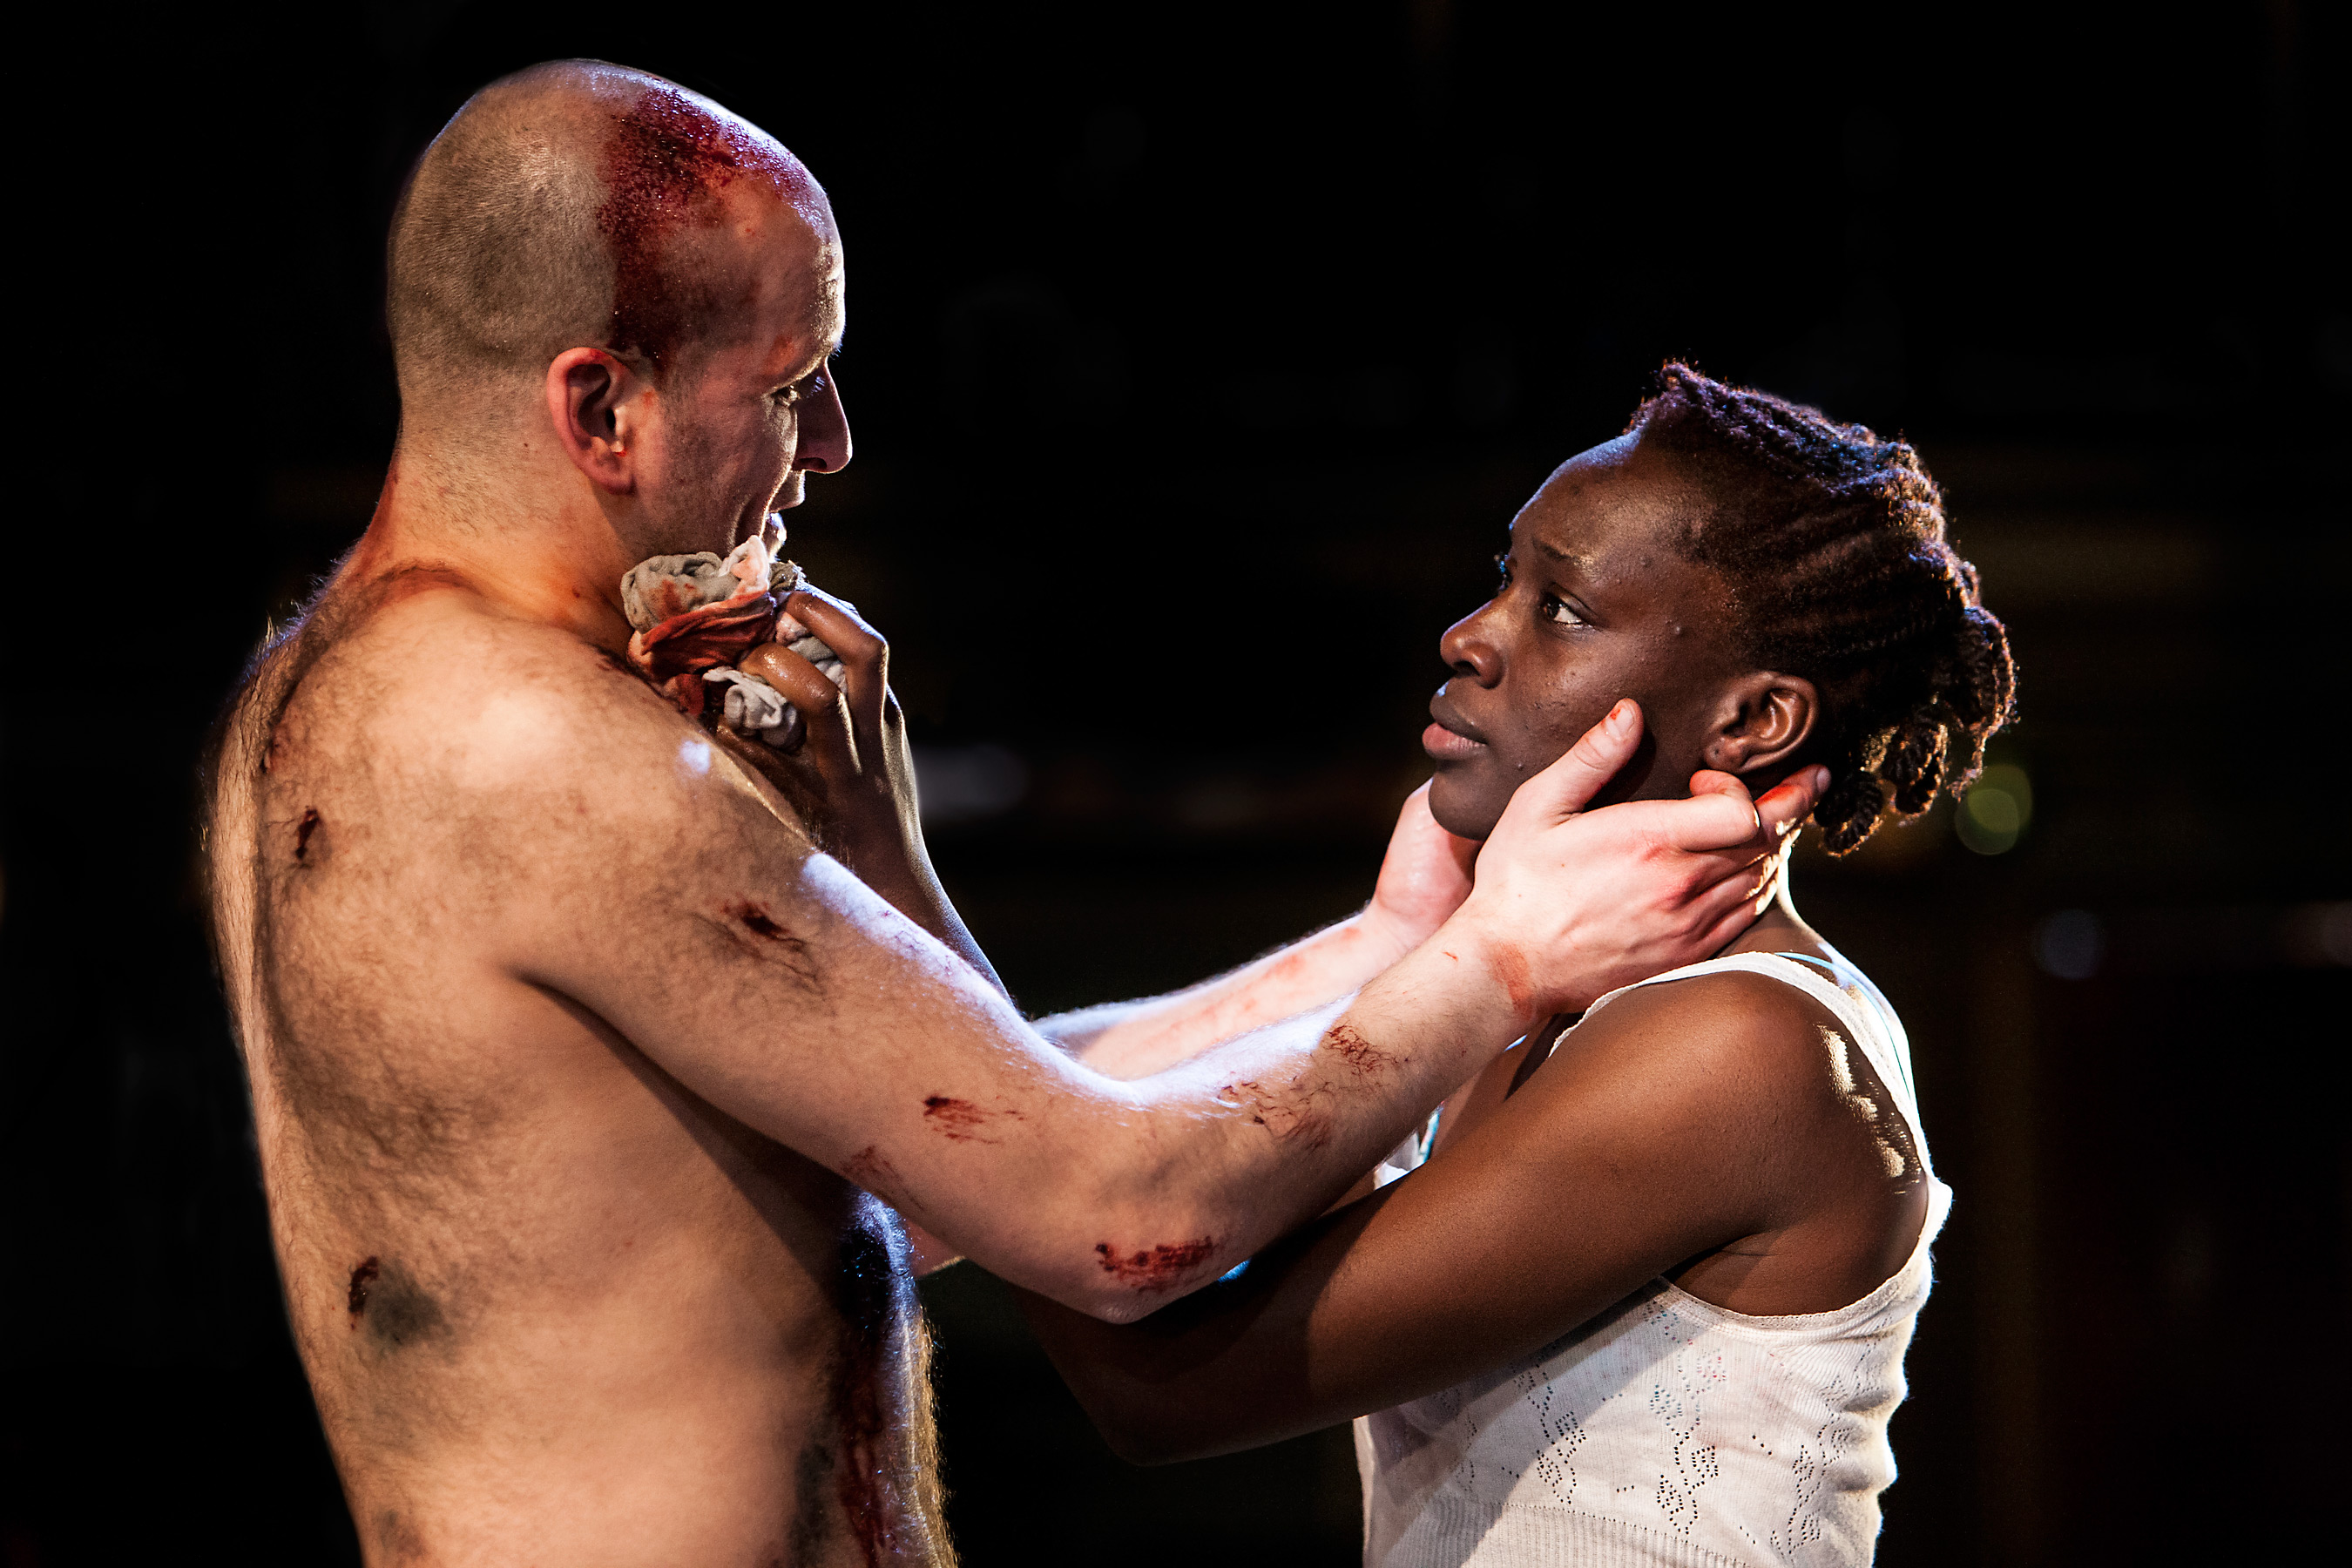 Ricky Champ as Josef The Fool (left) and Ony Uhiara as Lizaveta in CANNIBALS by Rory Mullarkey (Royal Exchange Theatre until 27 April). Photo - Jonathan Keenan